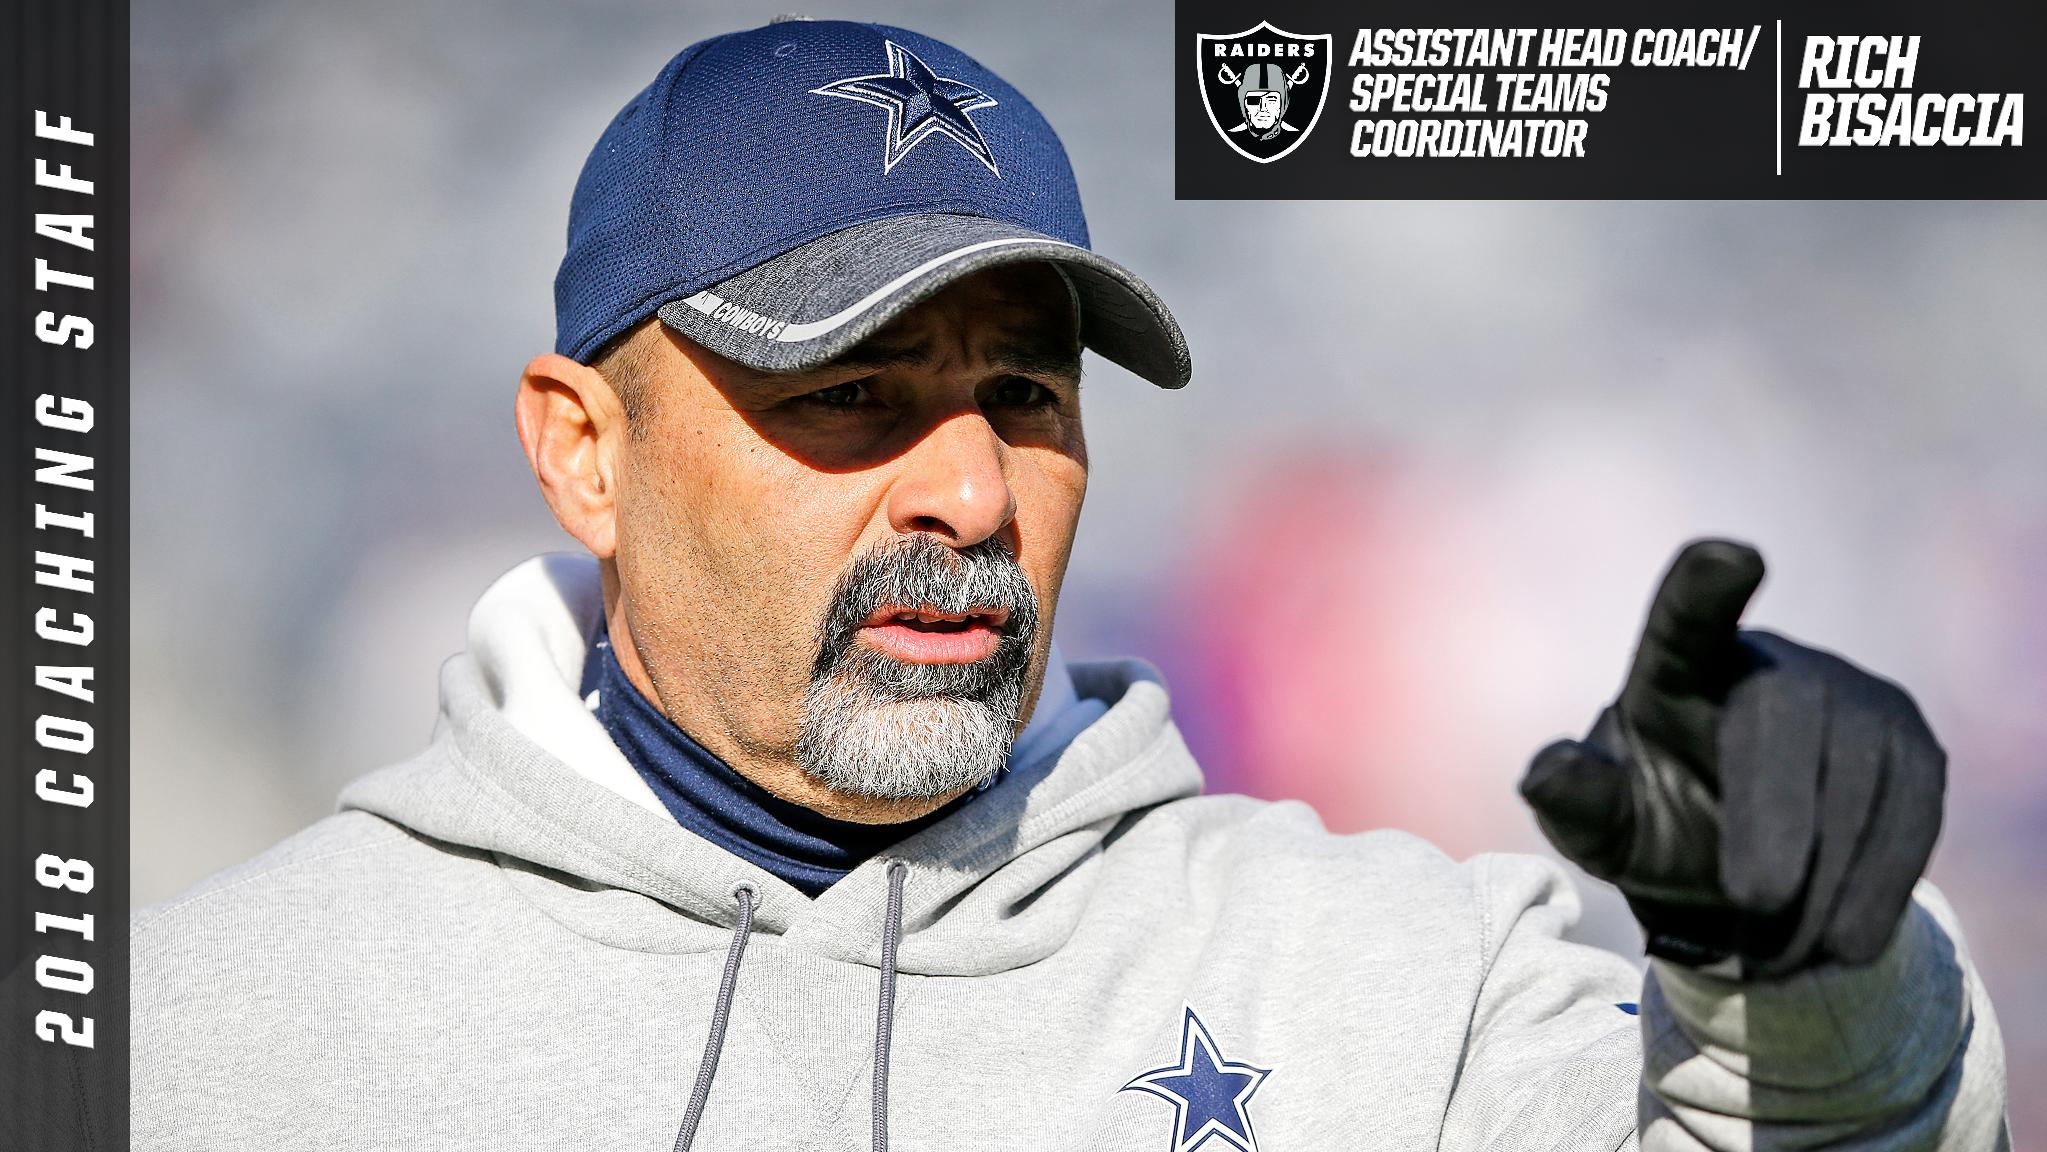 Raiders Announce Rich Bisaccia As Assistant Head Coach/Special Teams Coordinator